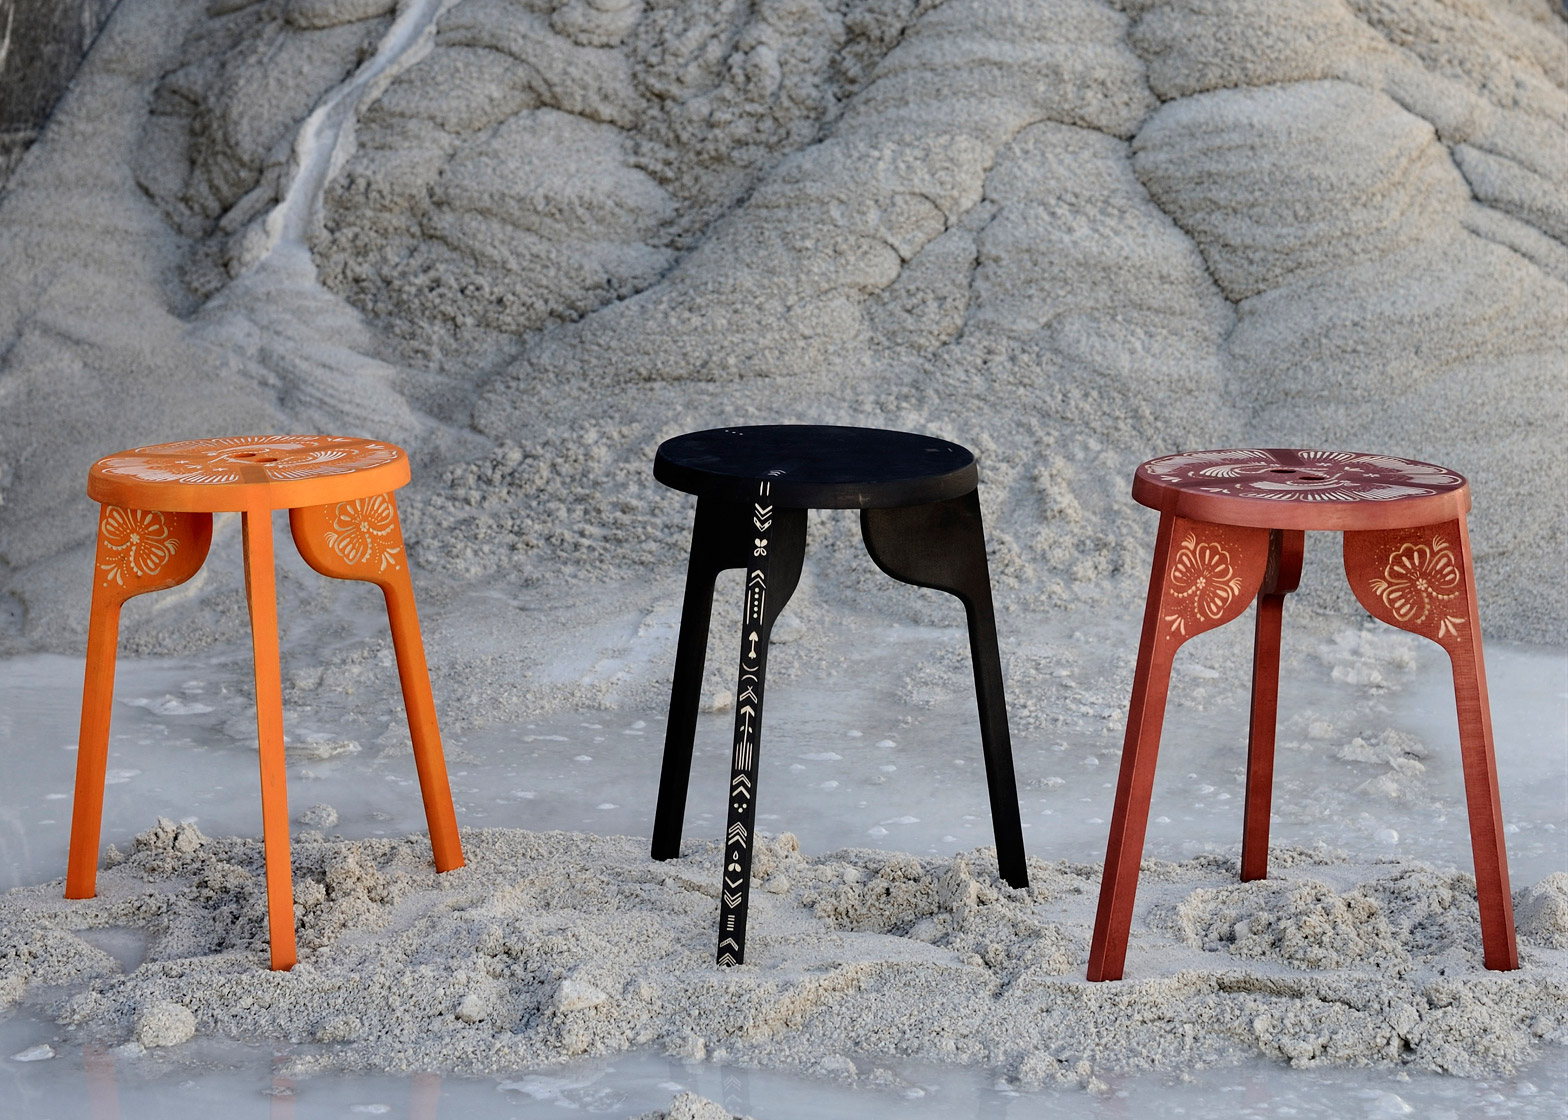 Stool by Wingårdhs for Zanat wood furniture design crafts